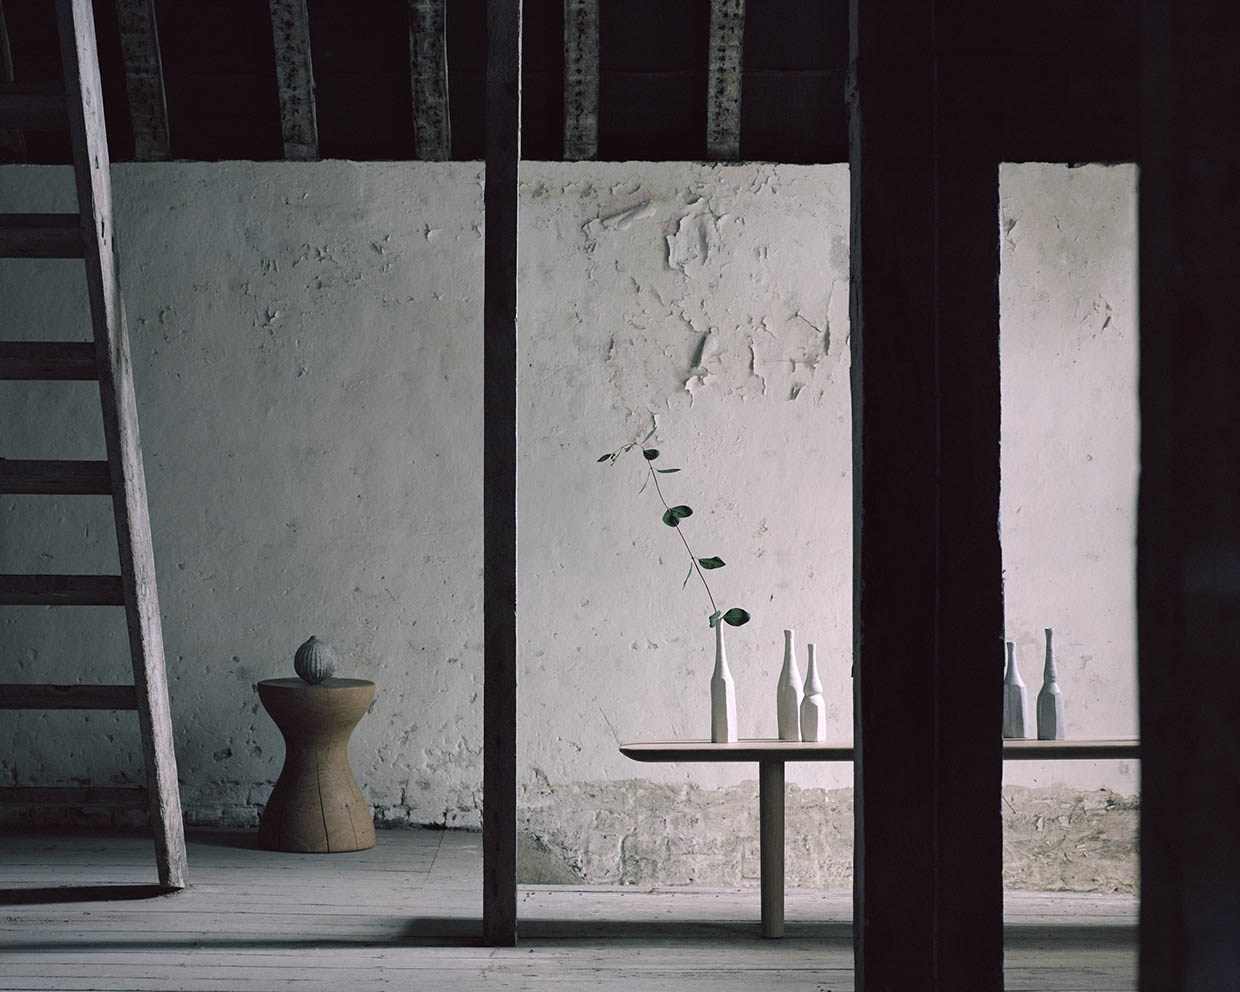 Sania Pell interior photographic stylist for Maud & Mable craft and ceramic art gallery, photography by Rory Gardiner